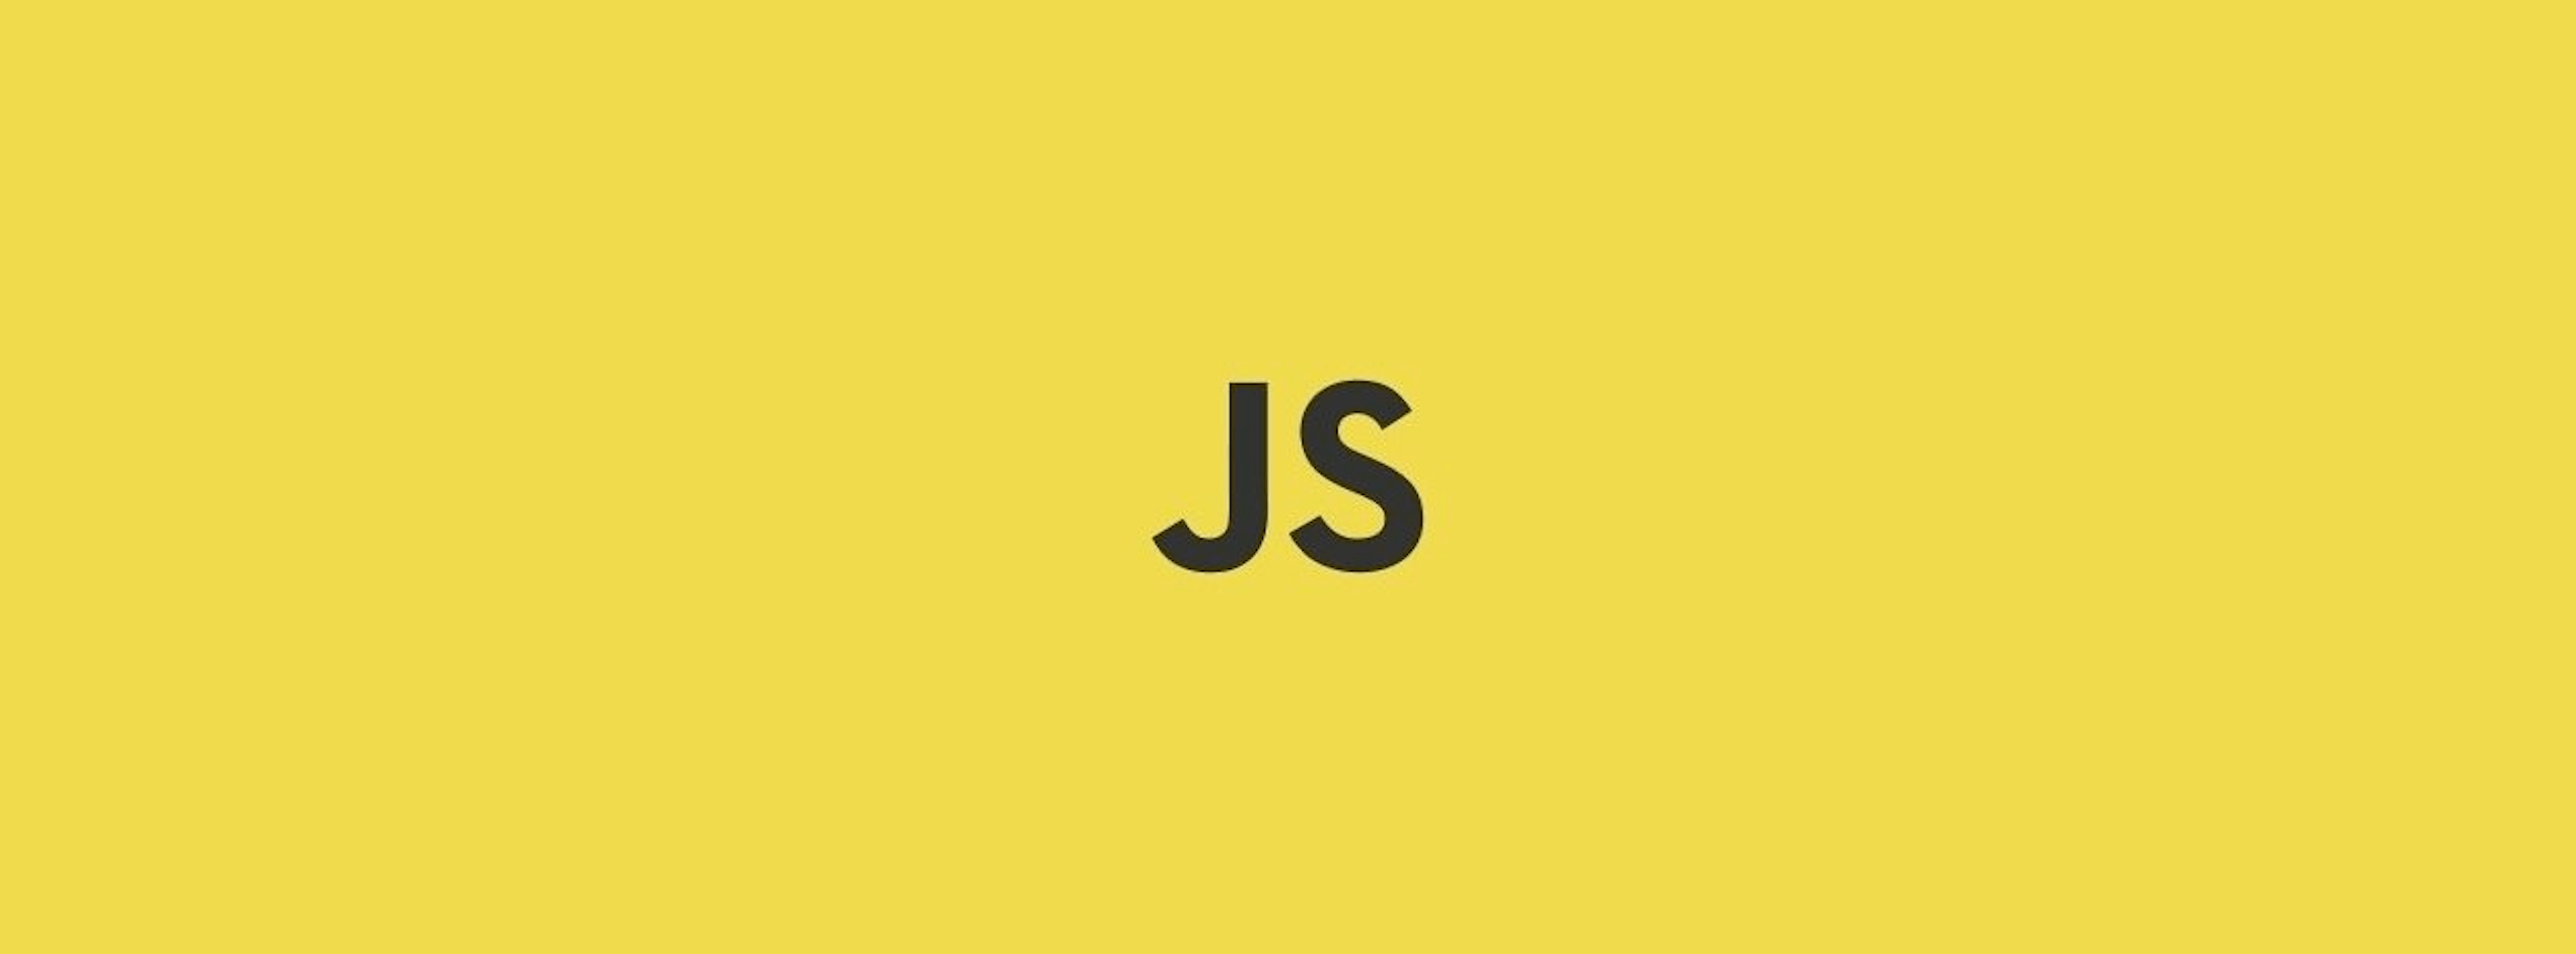 Learning JavaScript Resources for 2019